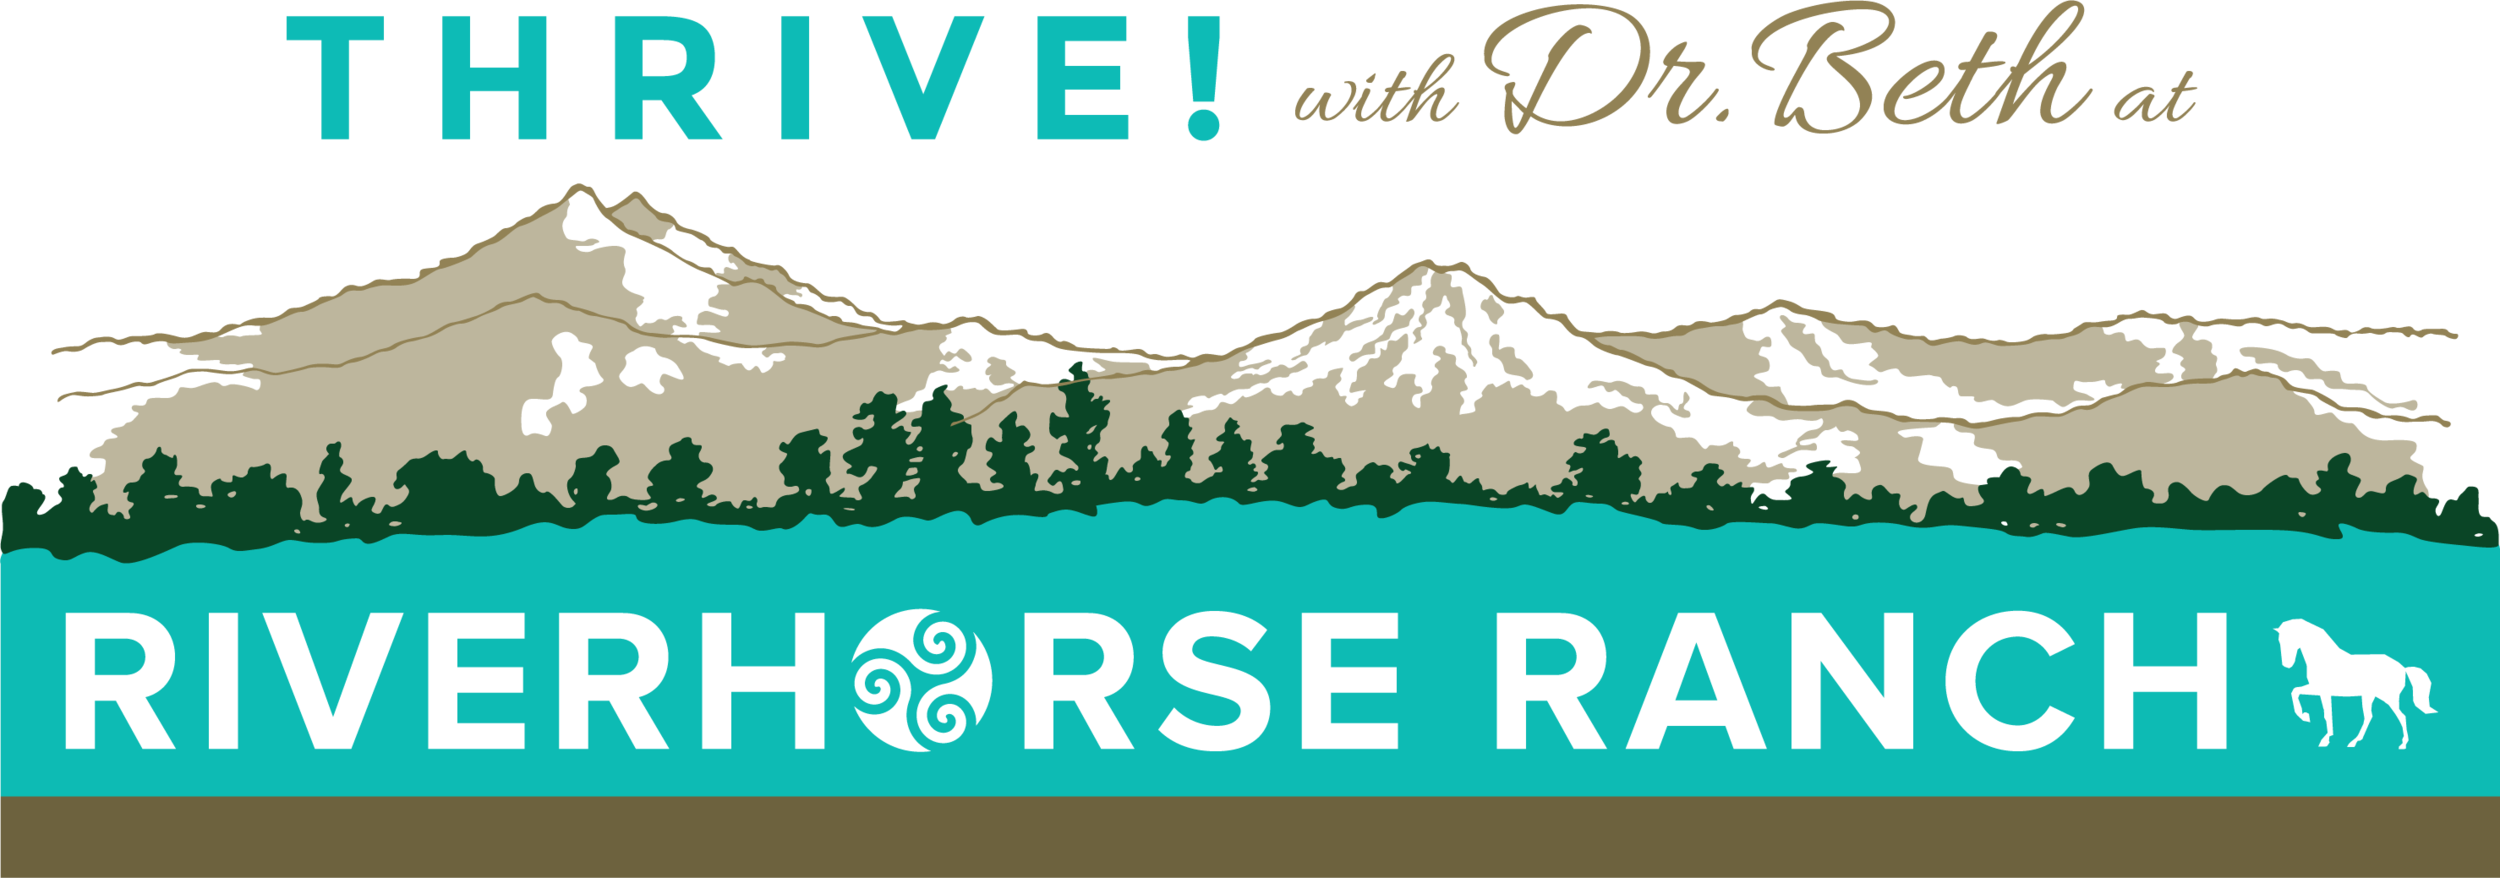 DrBeth_RiverhorseRanch_Logo_Sheet.png